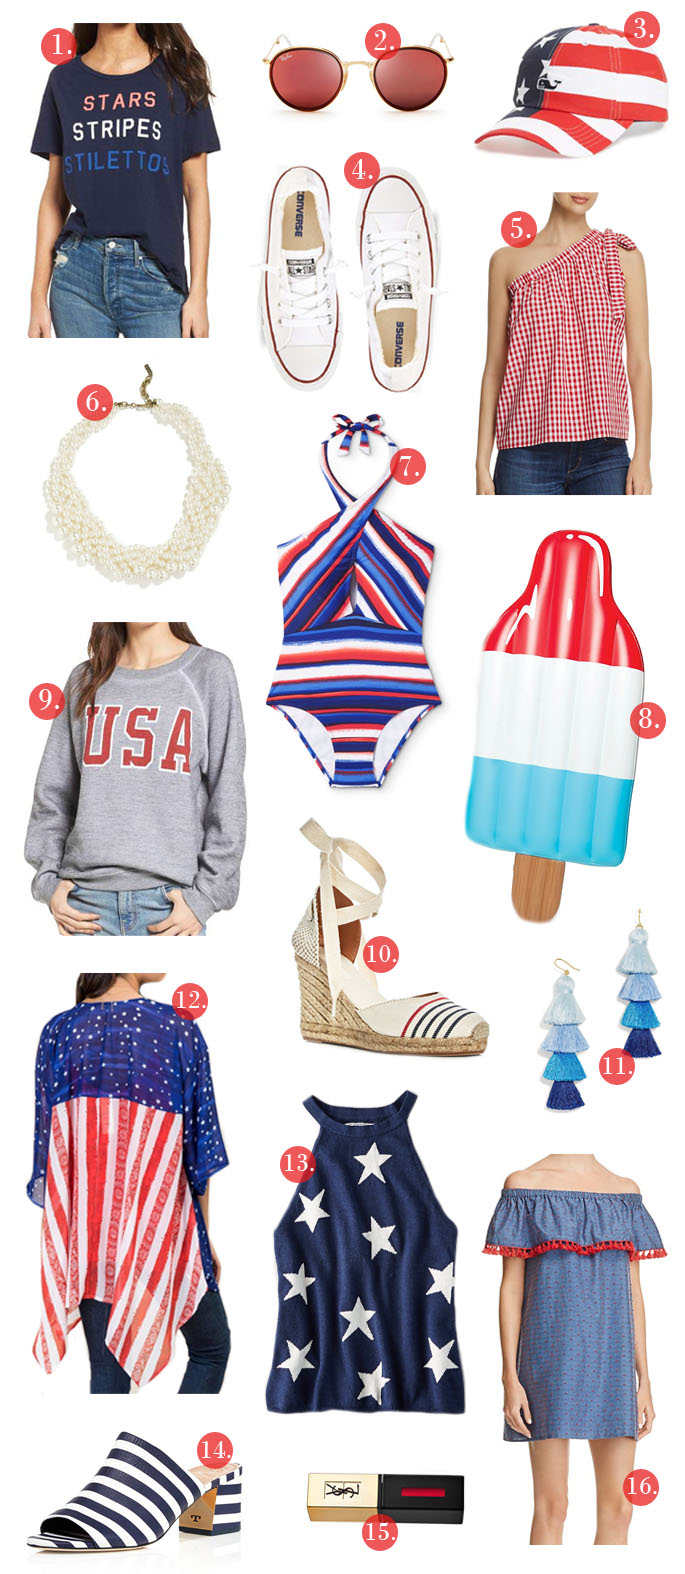 ff638bc5eb2a Daily Dose of Design  4th of July Outfit Ideas